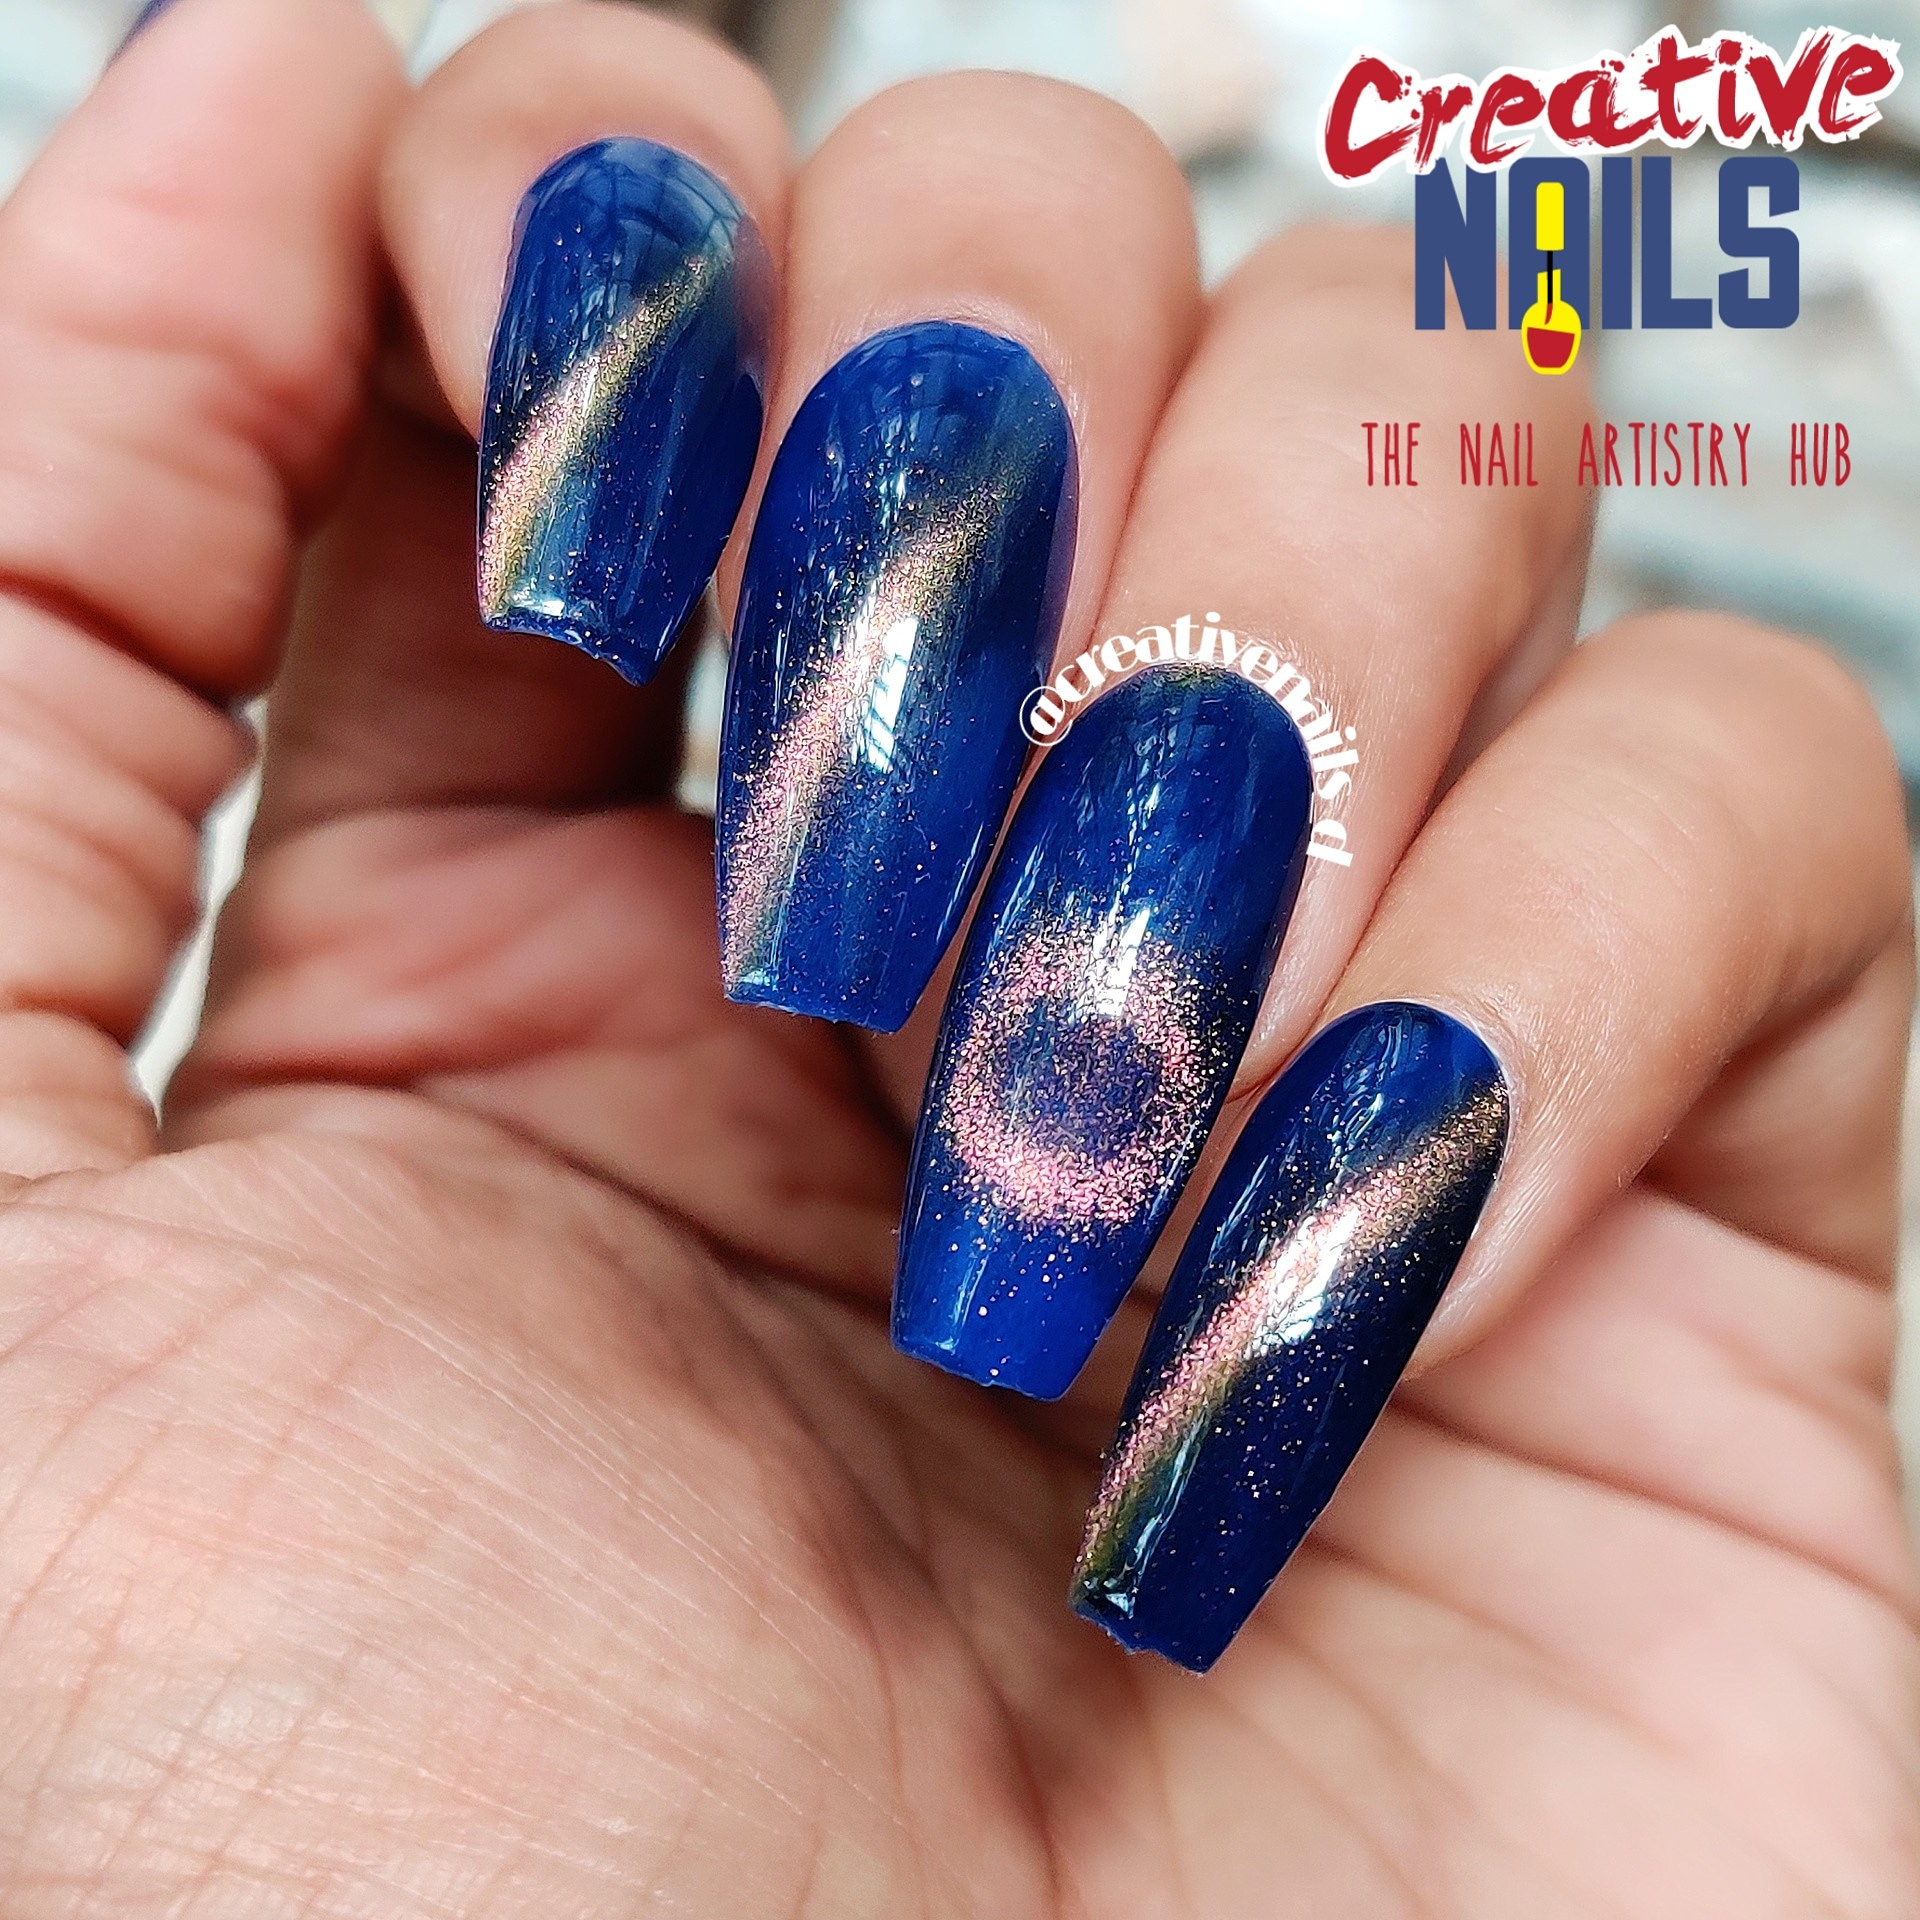 Fireworks On Nails For New Year 2020!